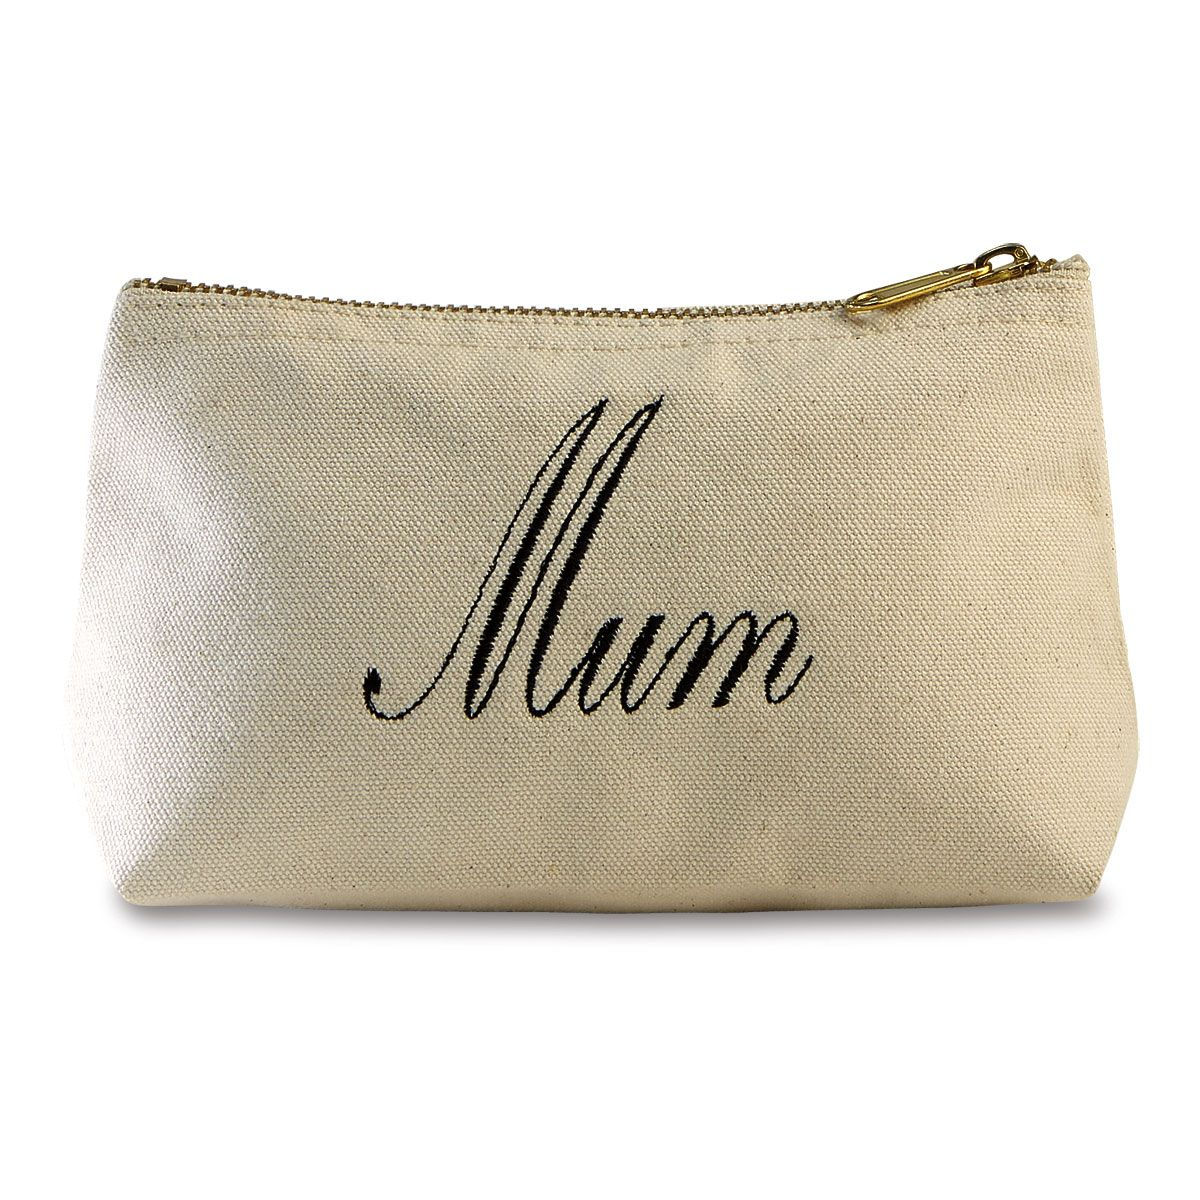 Mum Cosmetic Bag